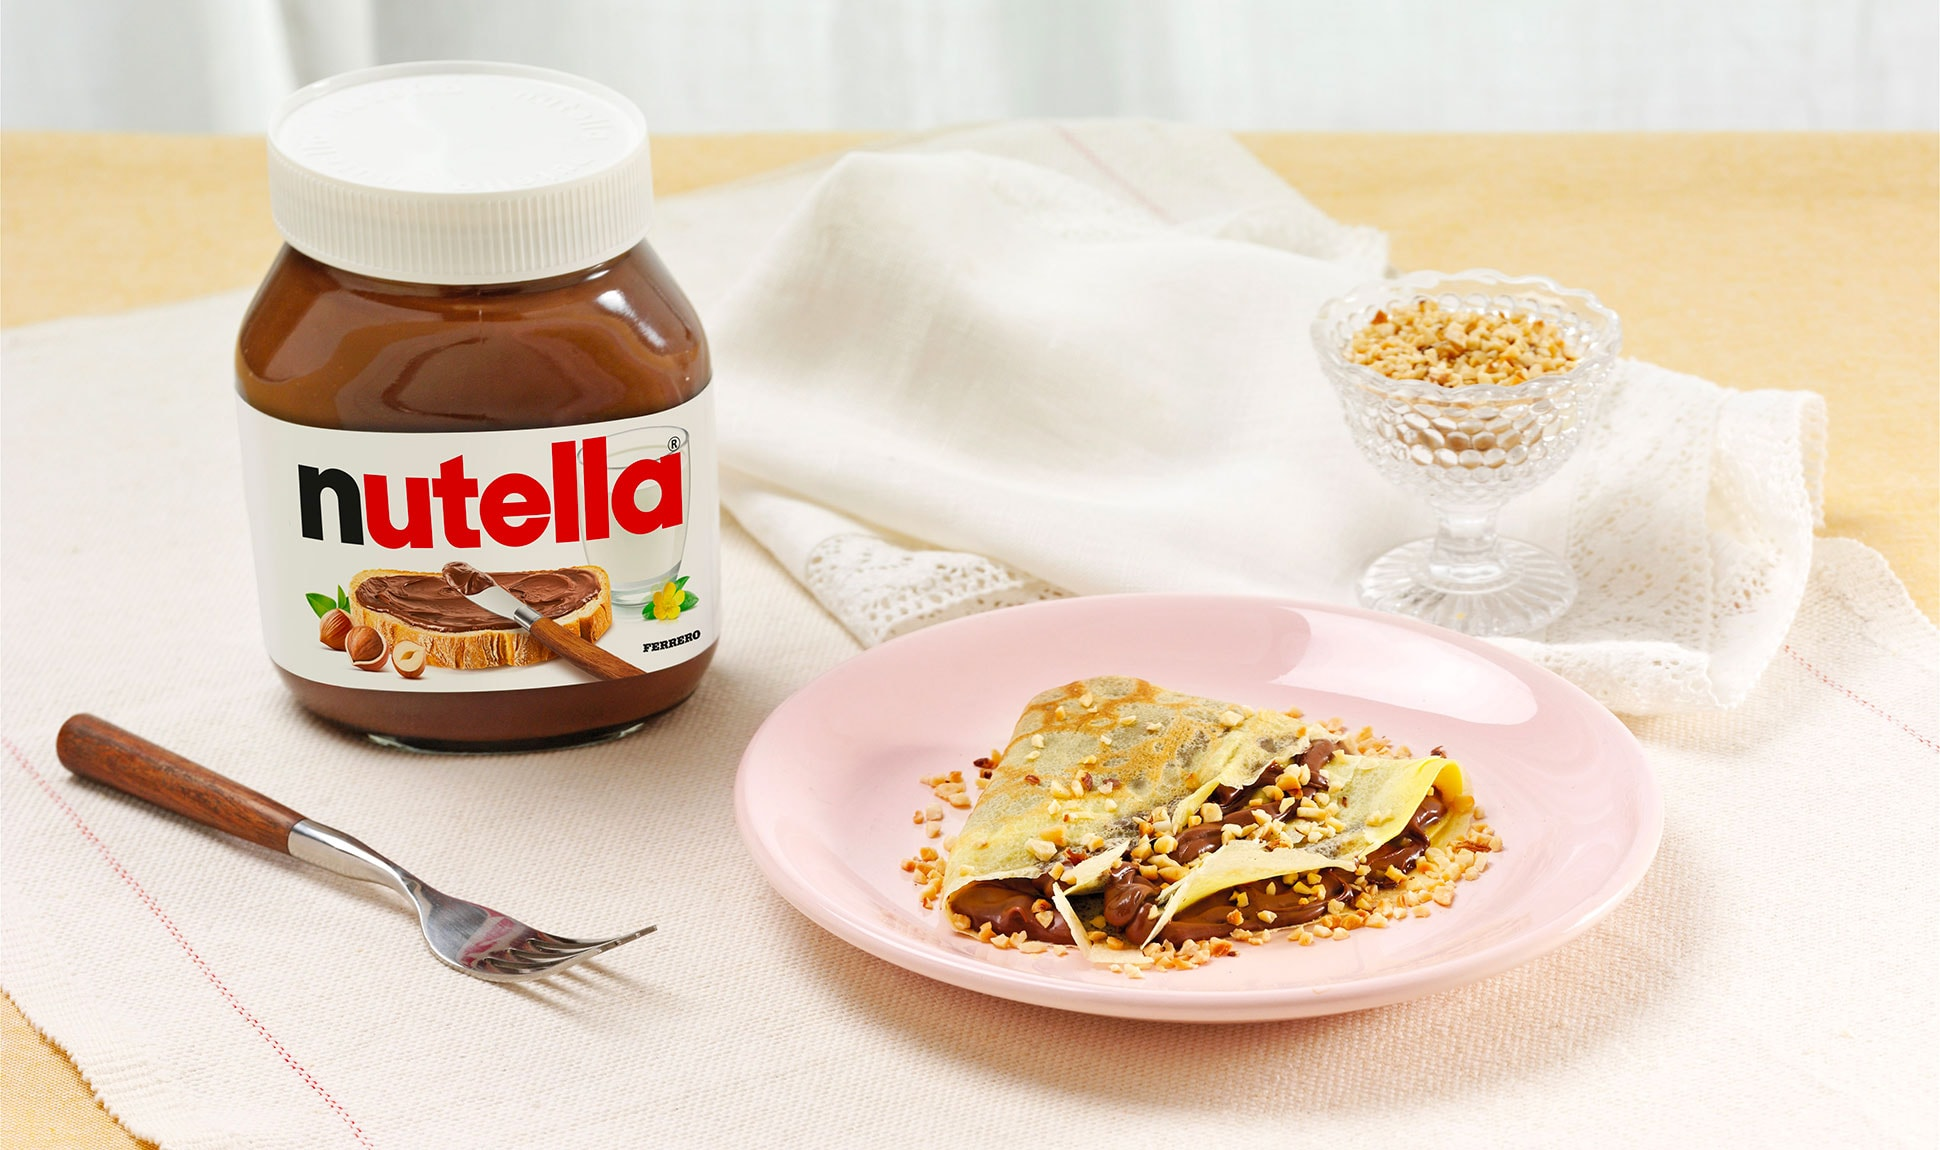 Crepes With Nutella And Hazelnuts Recipes Nutella Recipe